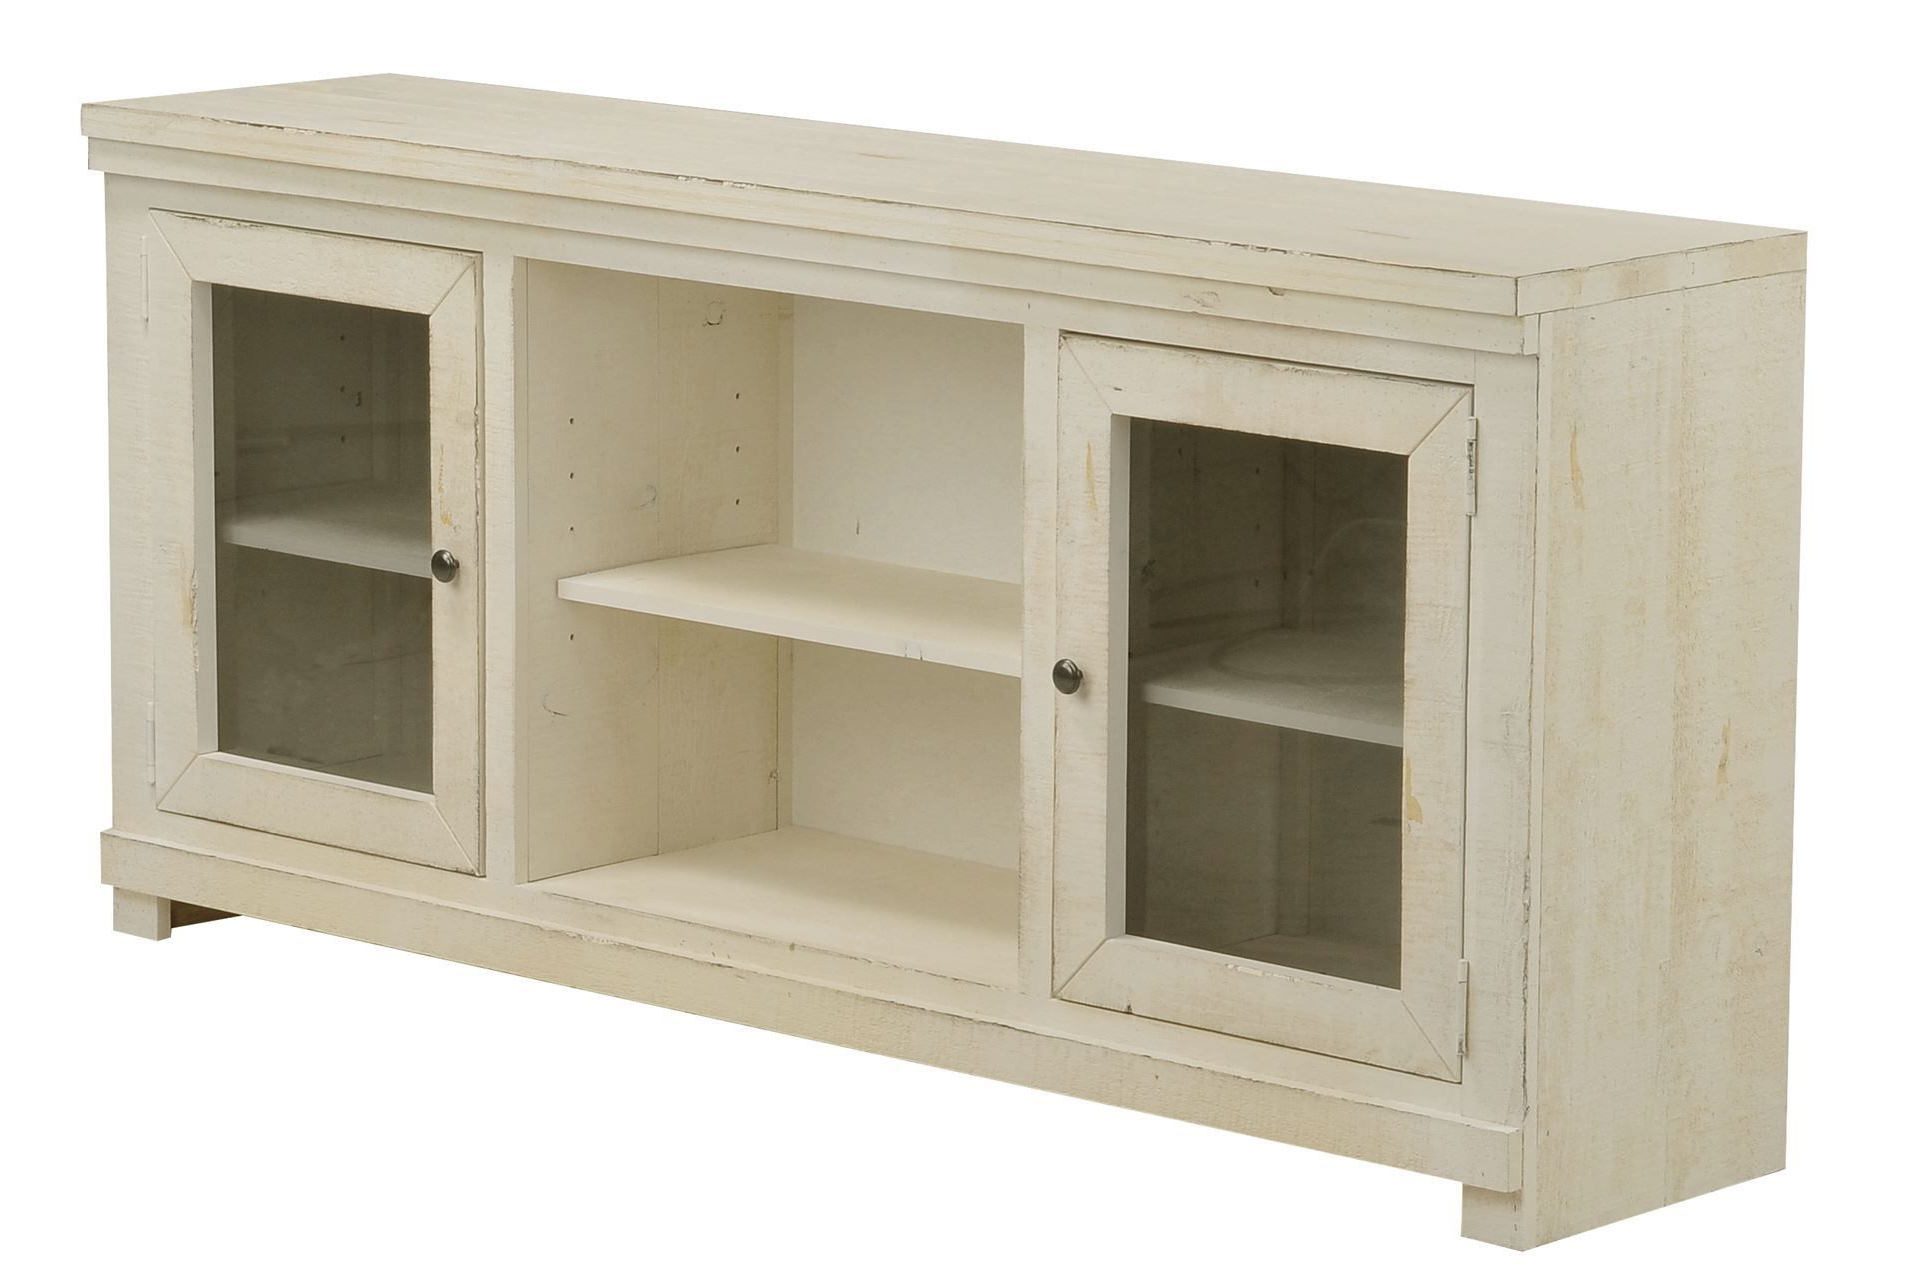 Sinclair White 68 Inch Tv Stand | For The Home | Living Room Designs With Sinclair White 64 Inch Tv Stands (Gallery 6 of 20)